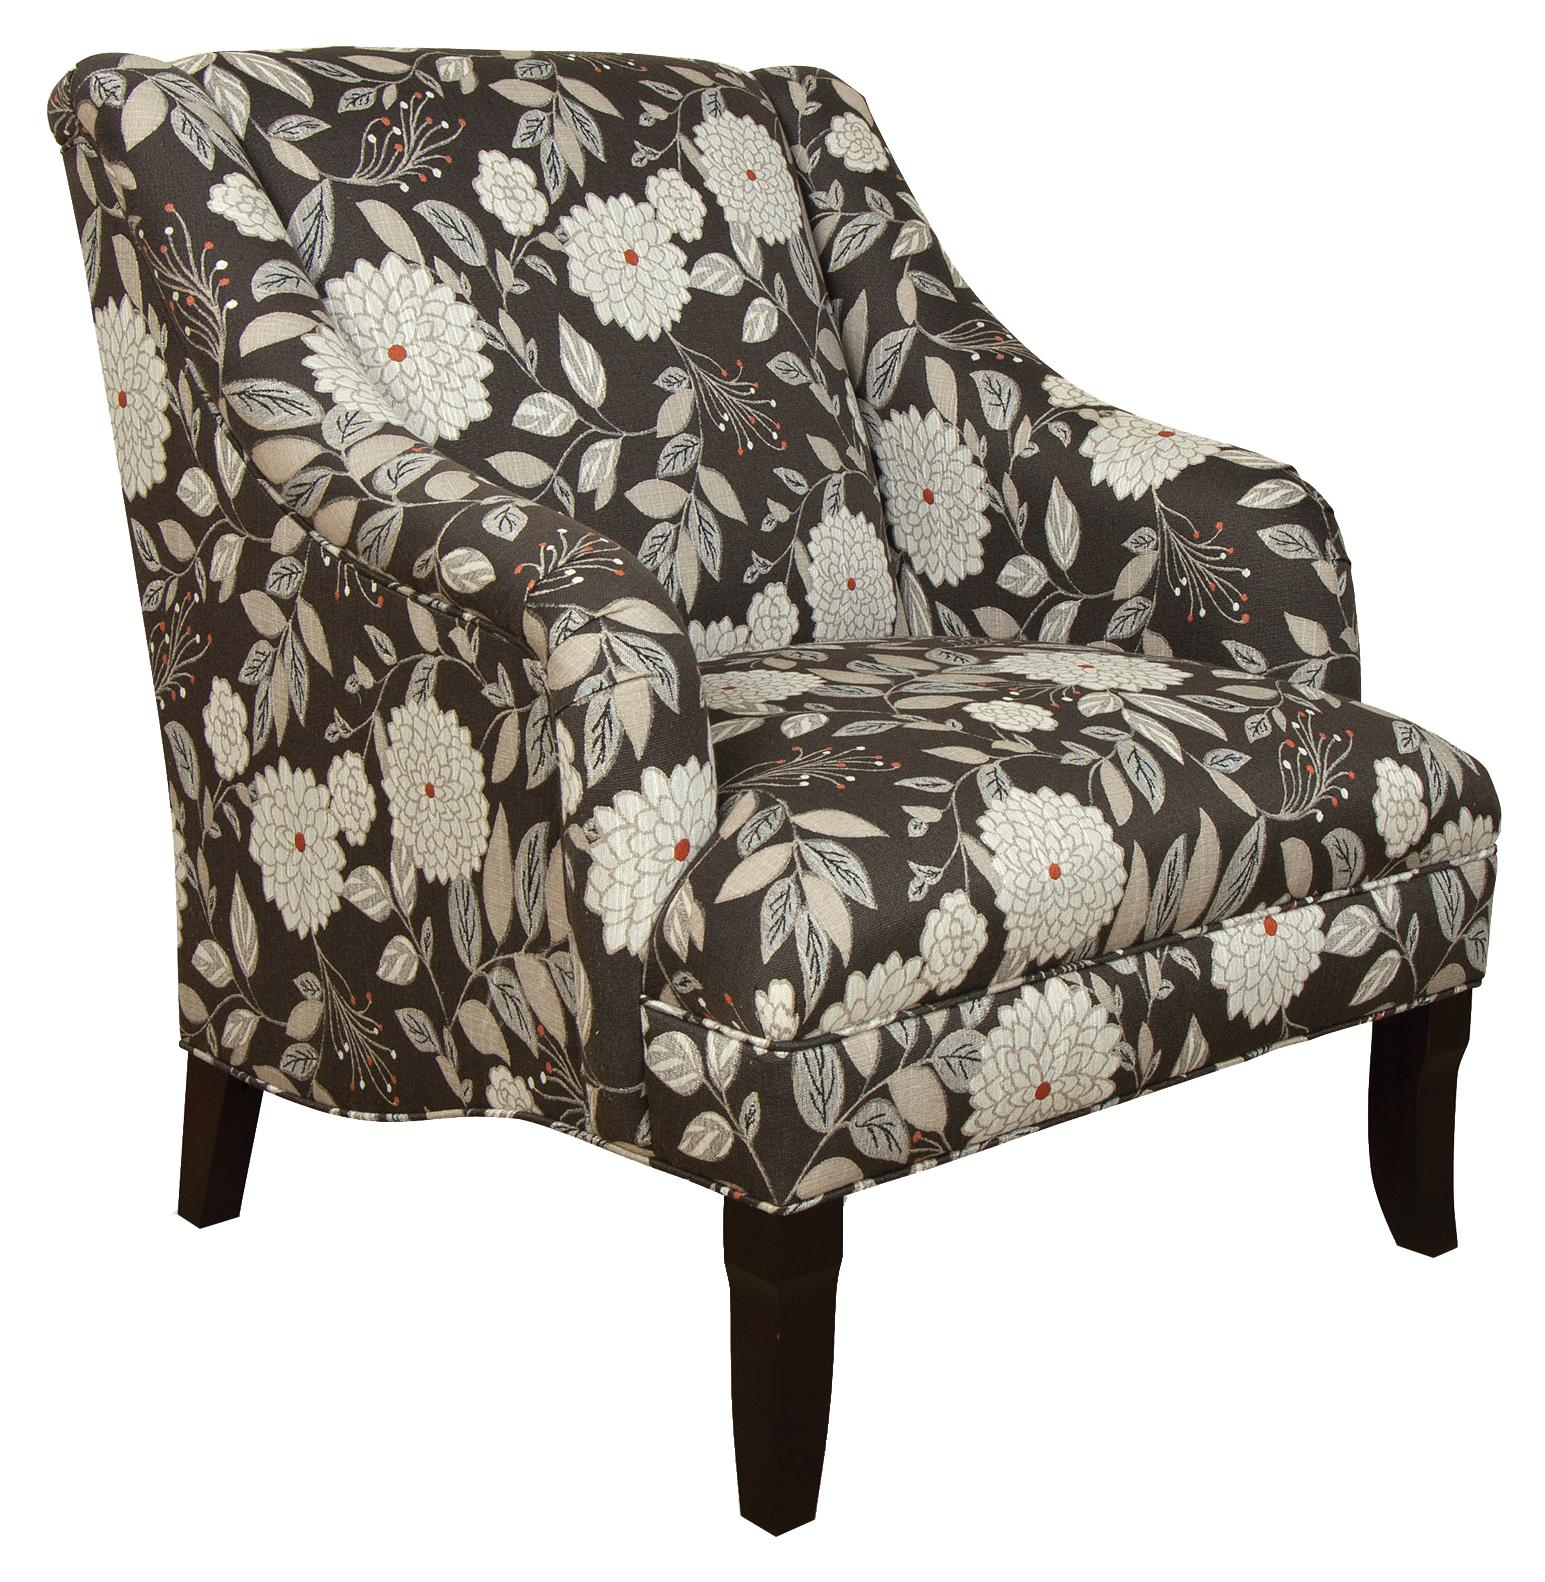 formal living room accent chairs waiting for sale england kinnett 3934 arm chair with